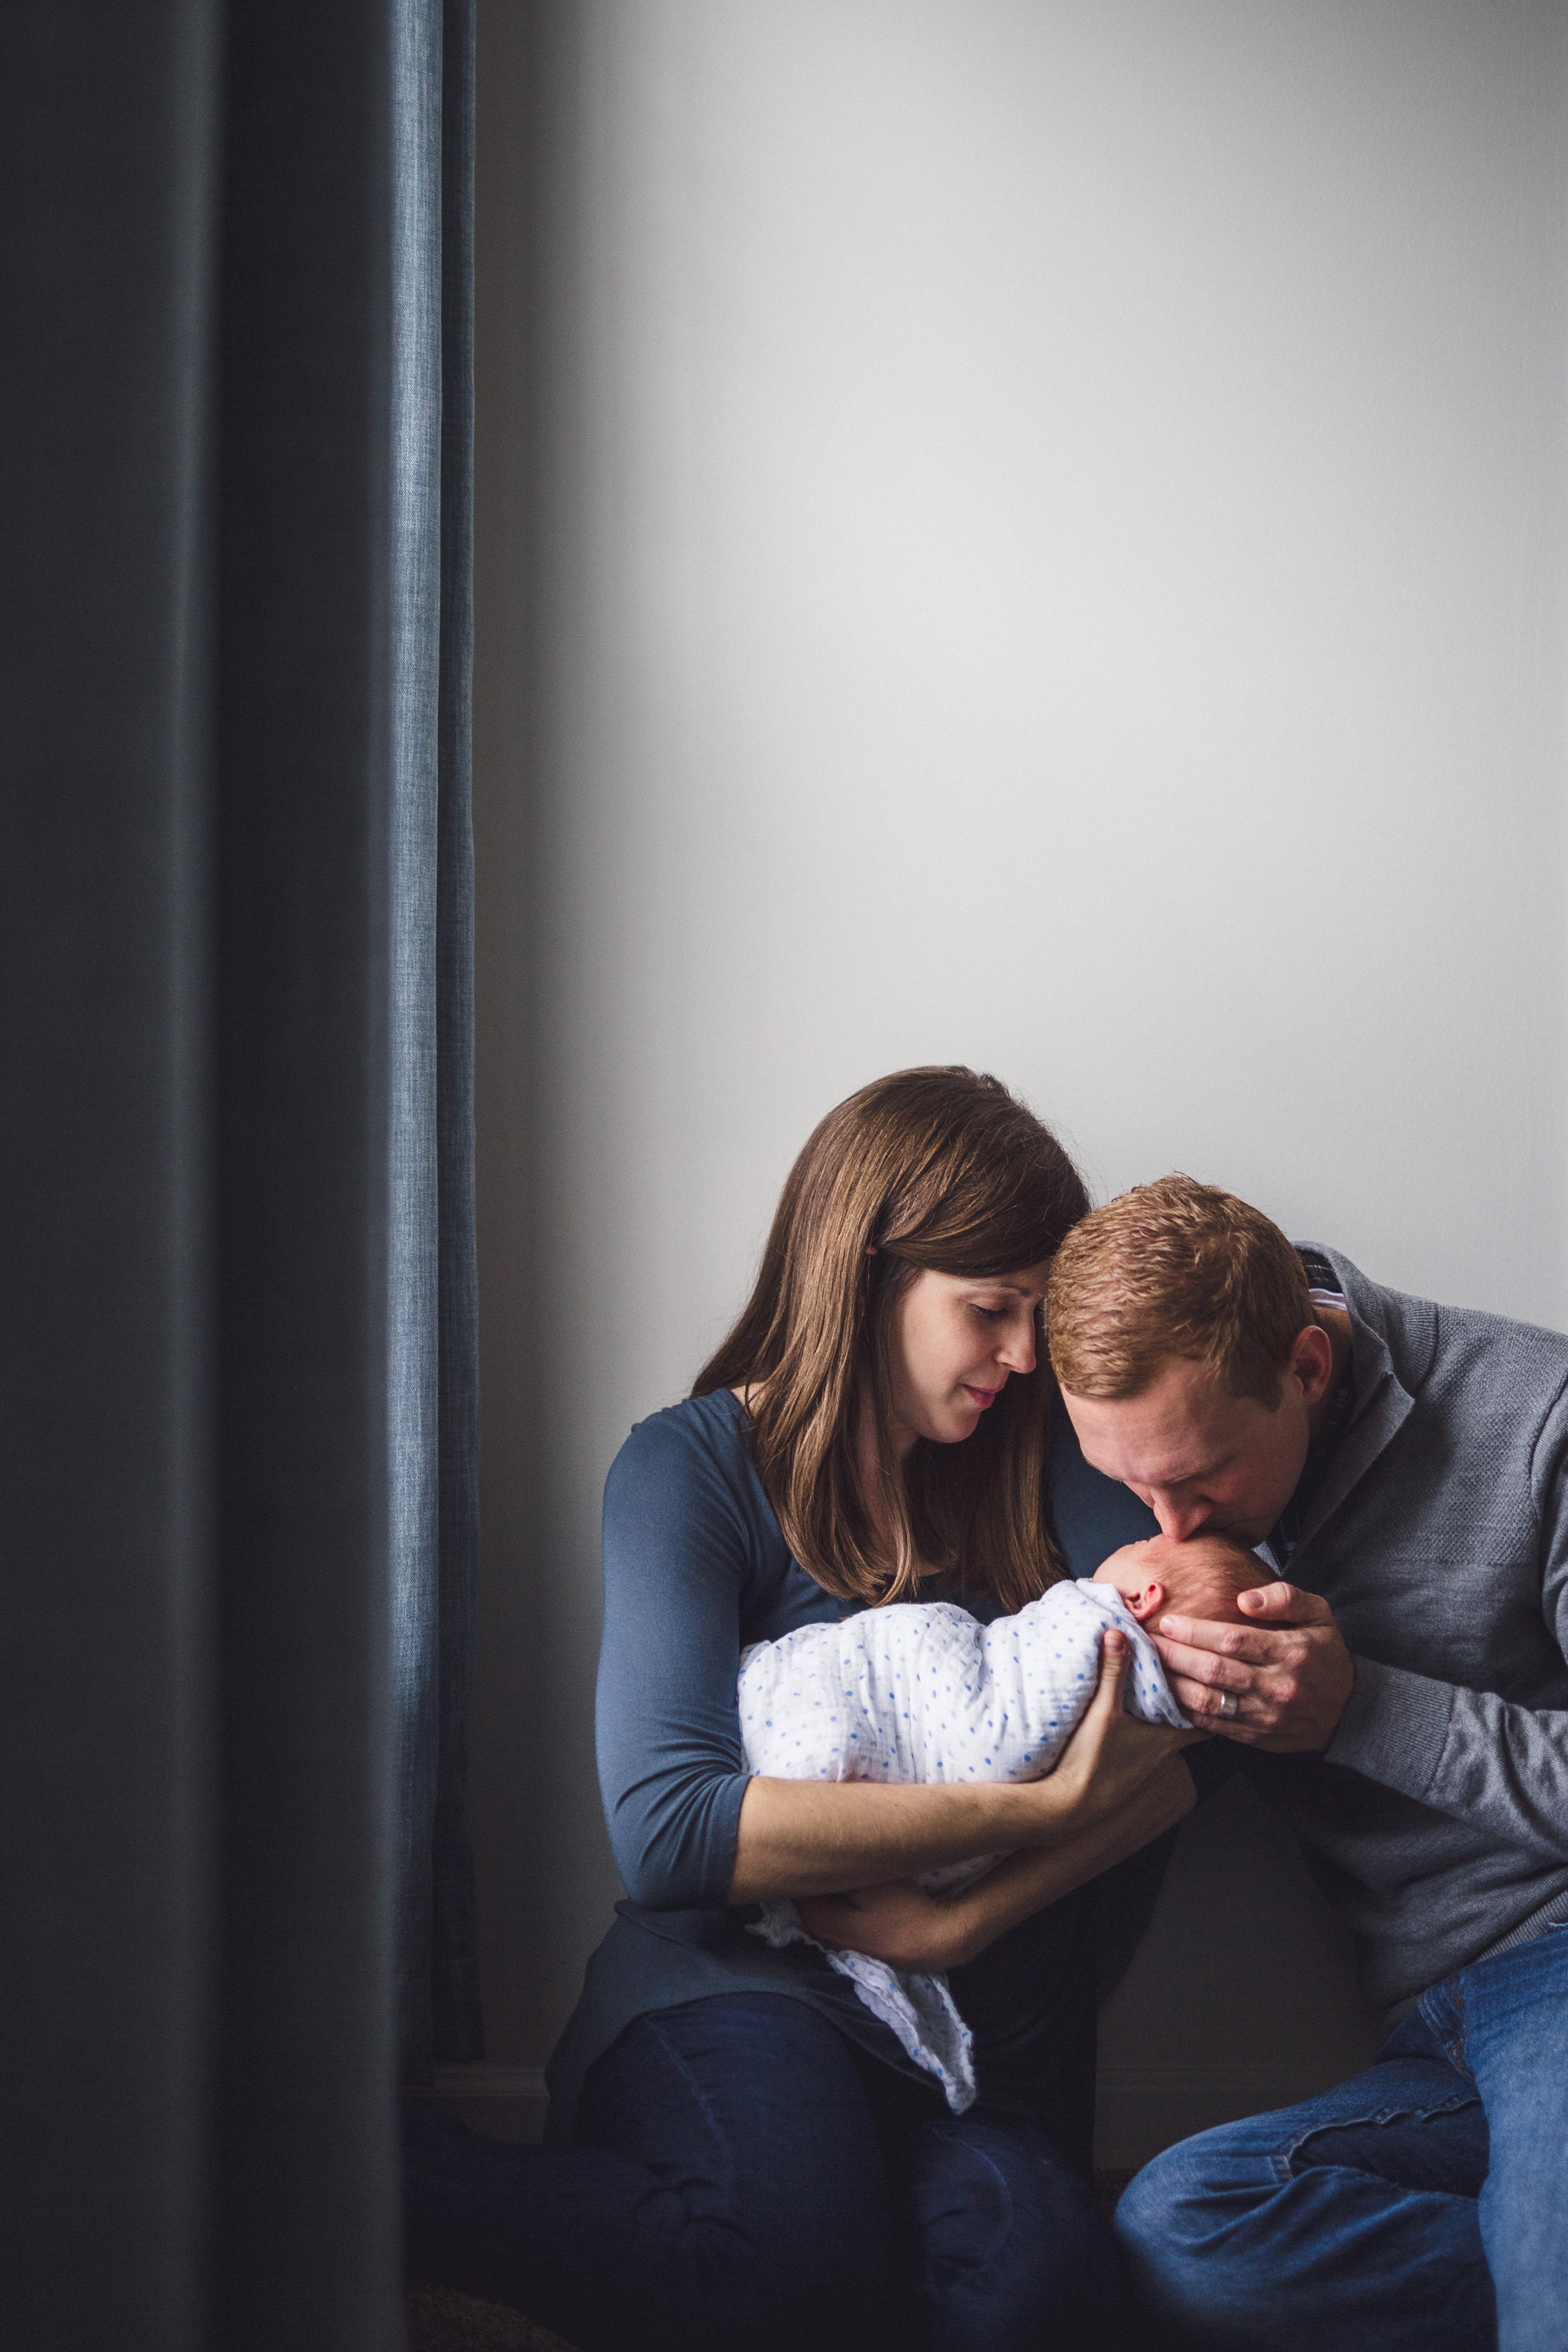 thomas wywrot photography nashville newborn photographer father kissing two week old baby on forehead while sitting with wife